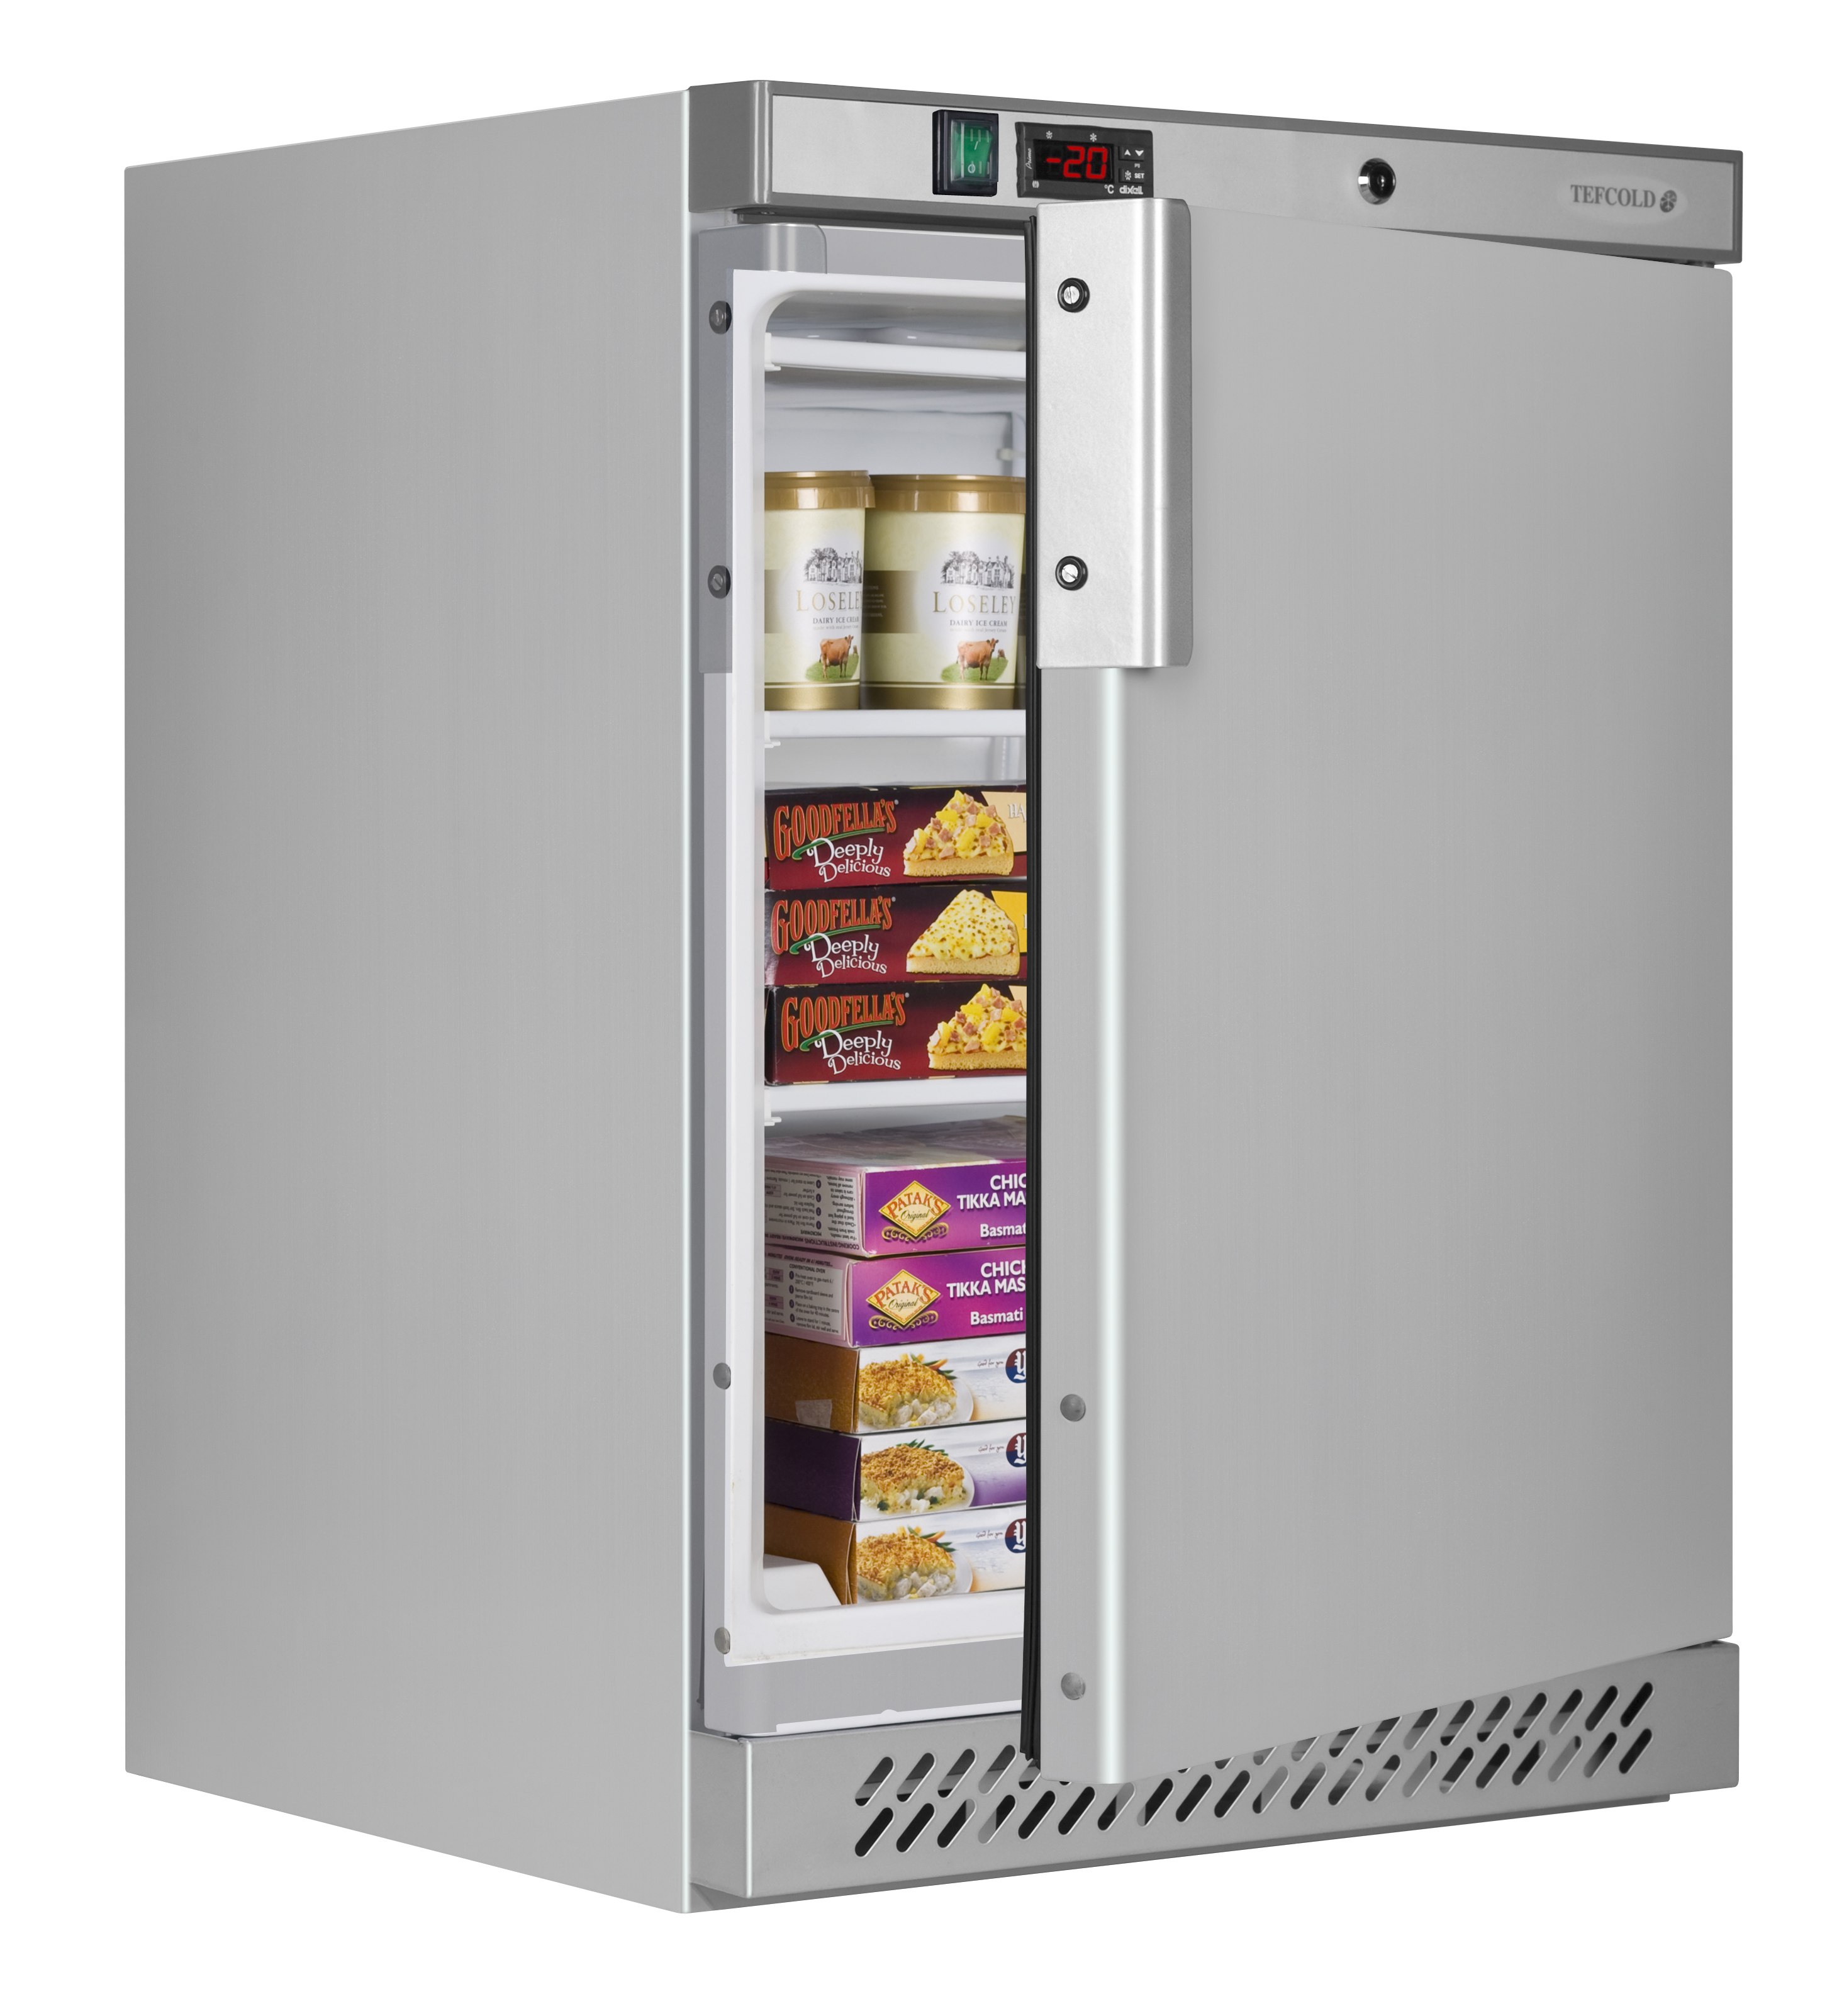 uf200ss Stainless St Freezer Open